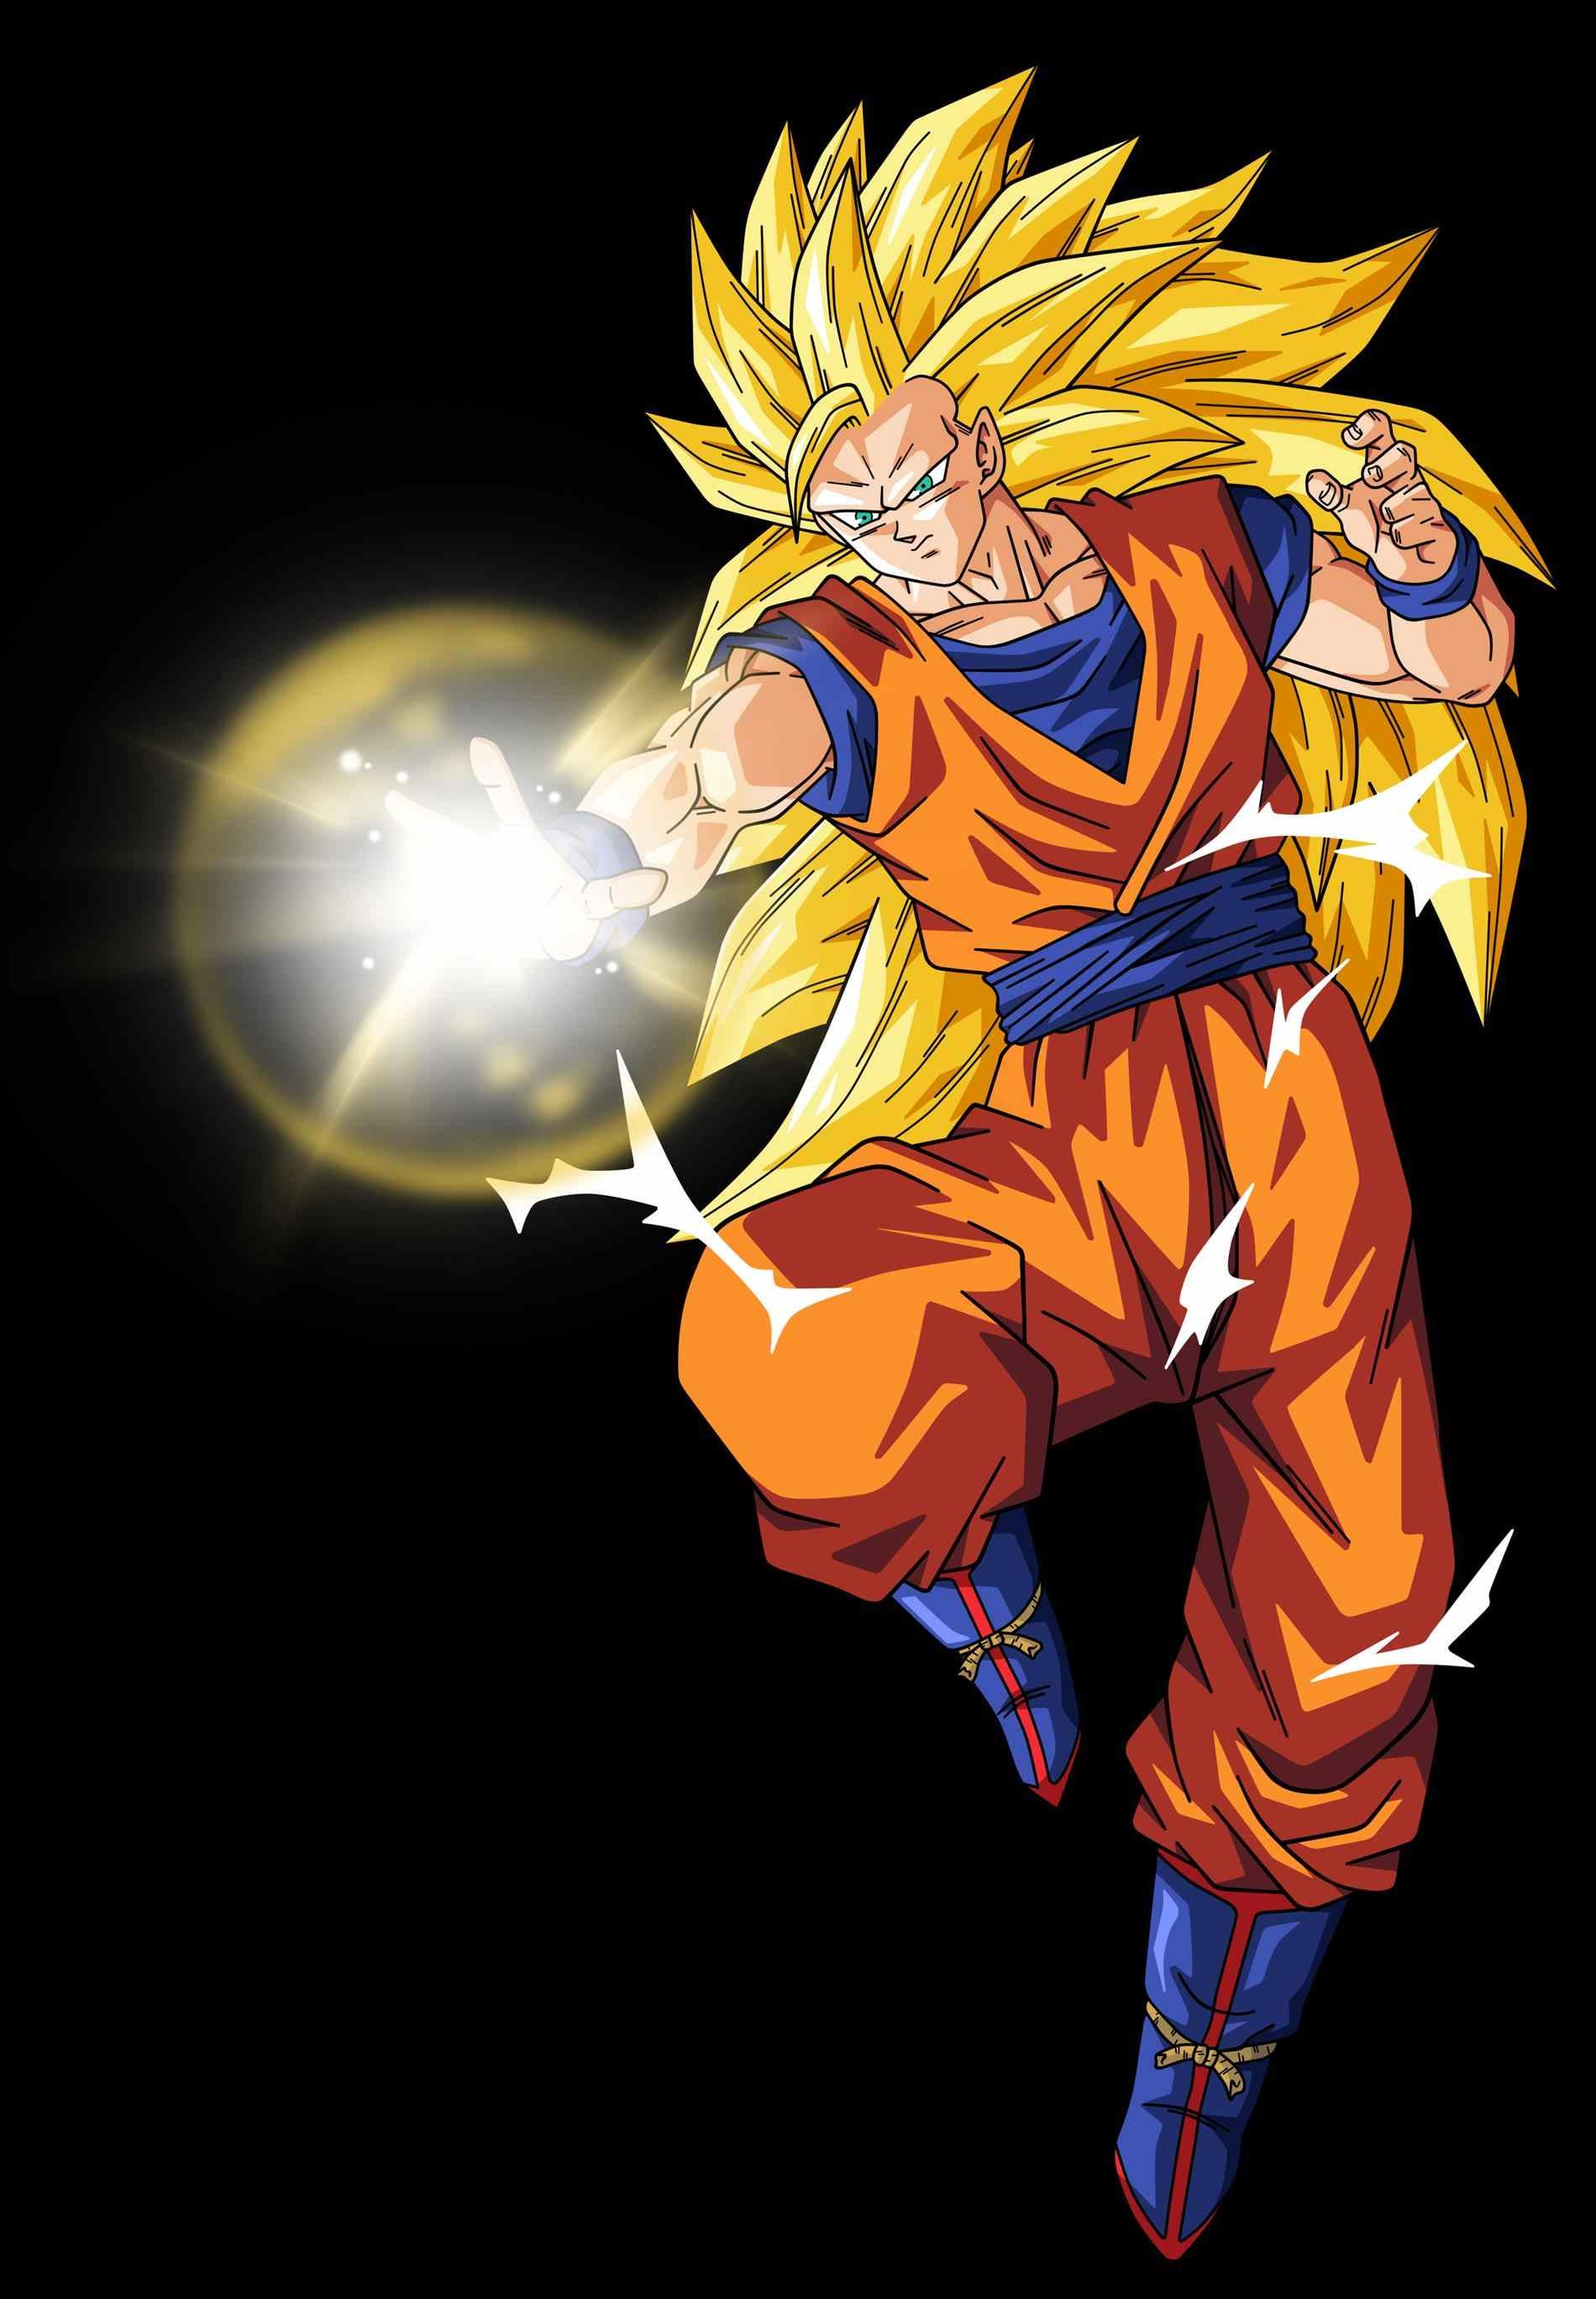 1900x2737 Super Saiyan Goku Kamehameha Wallpaper Download 1920x1080 Big Bang KameHameHa